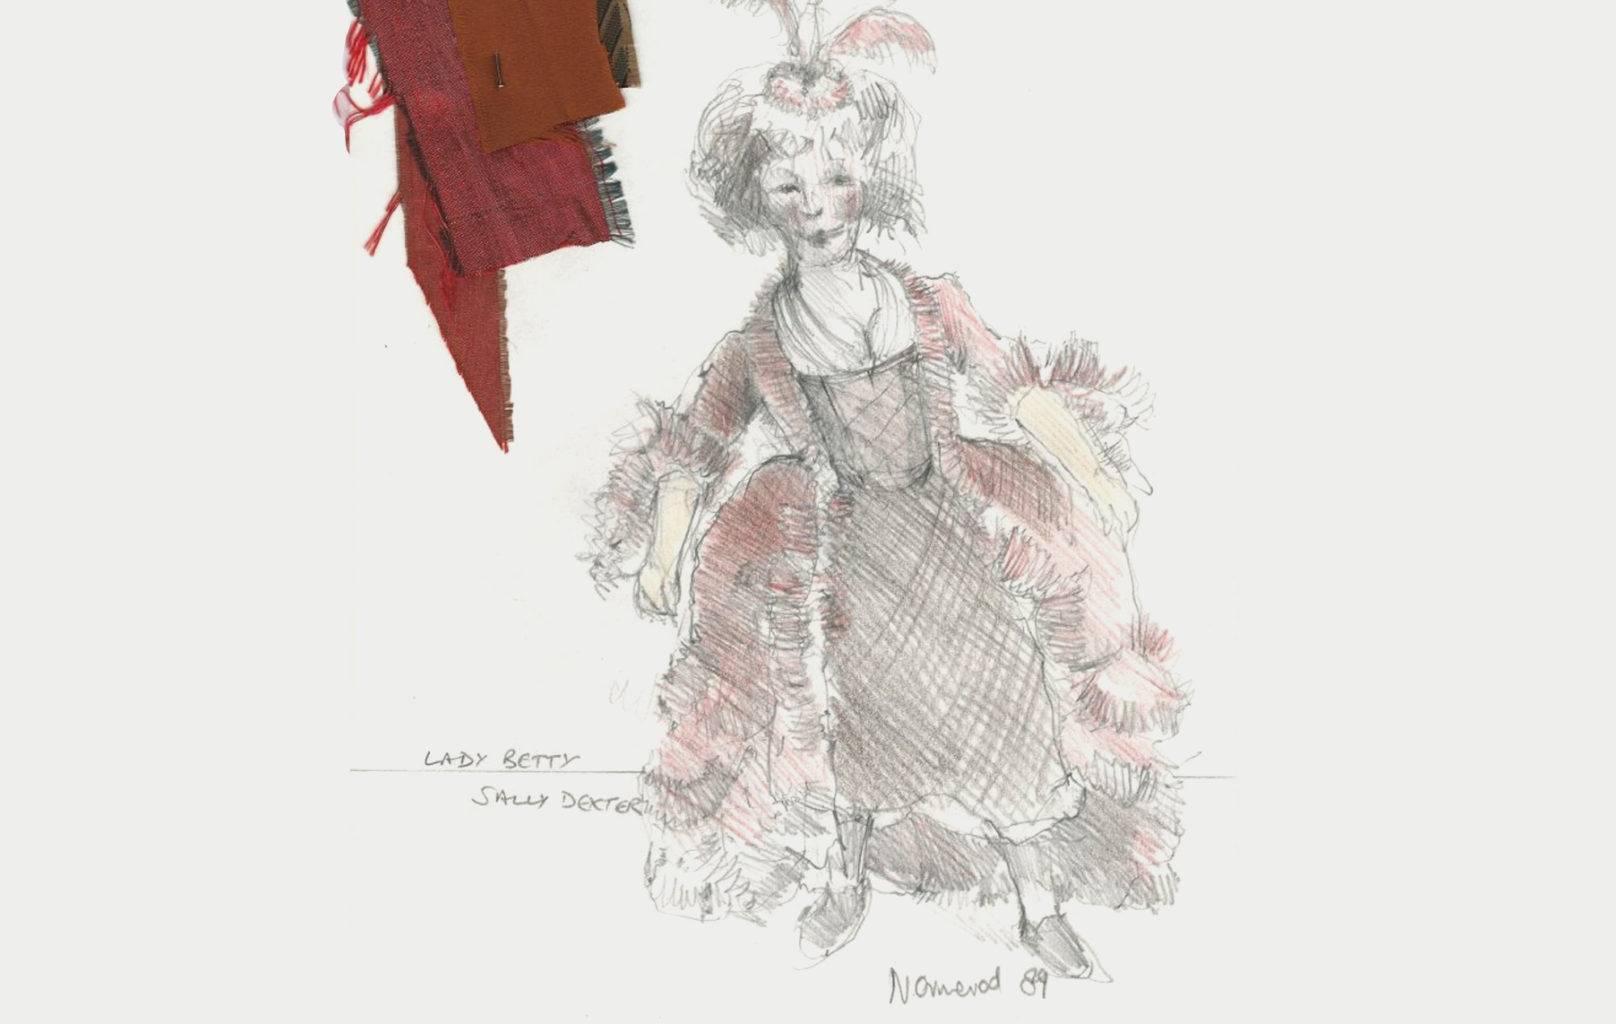 Nick Ormerod's costume design for Cheek by Jowl's production of Lady Betty